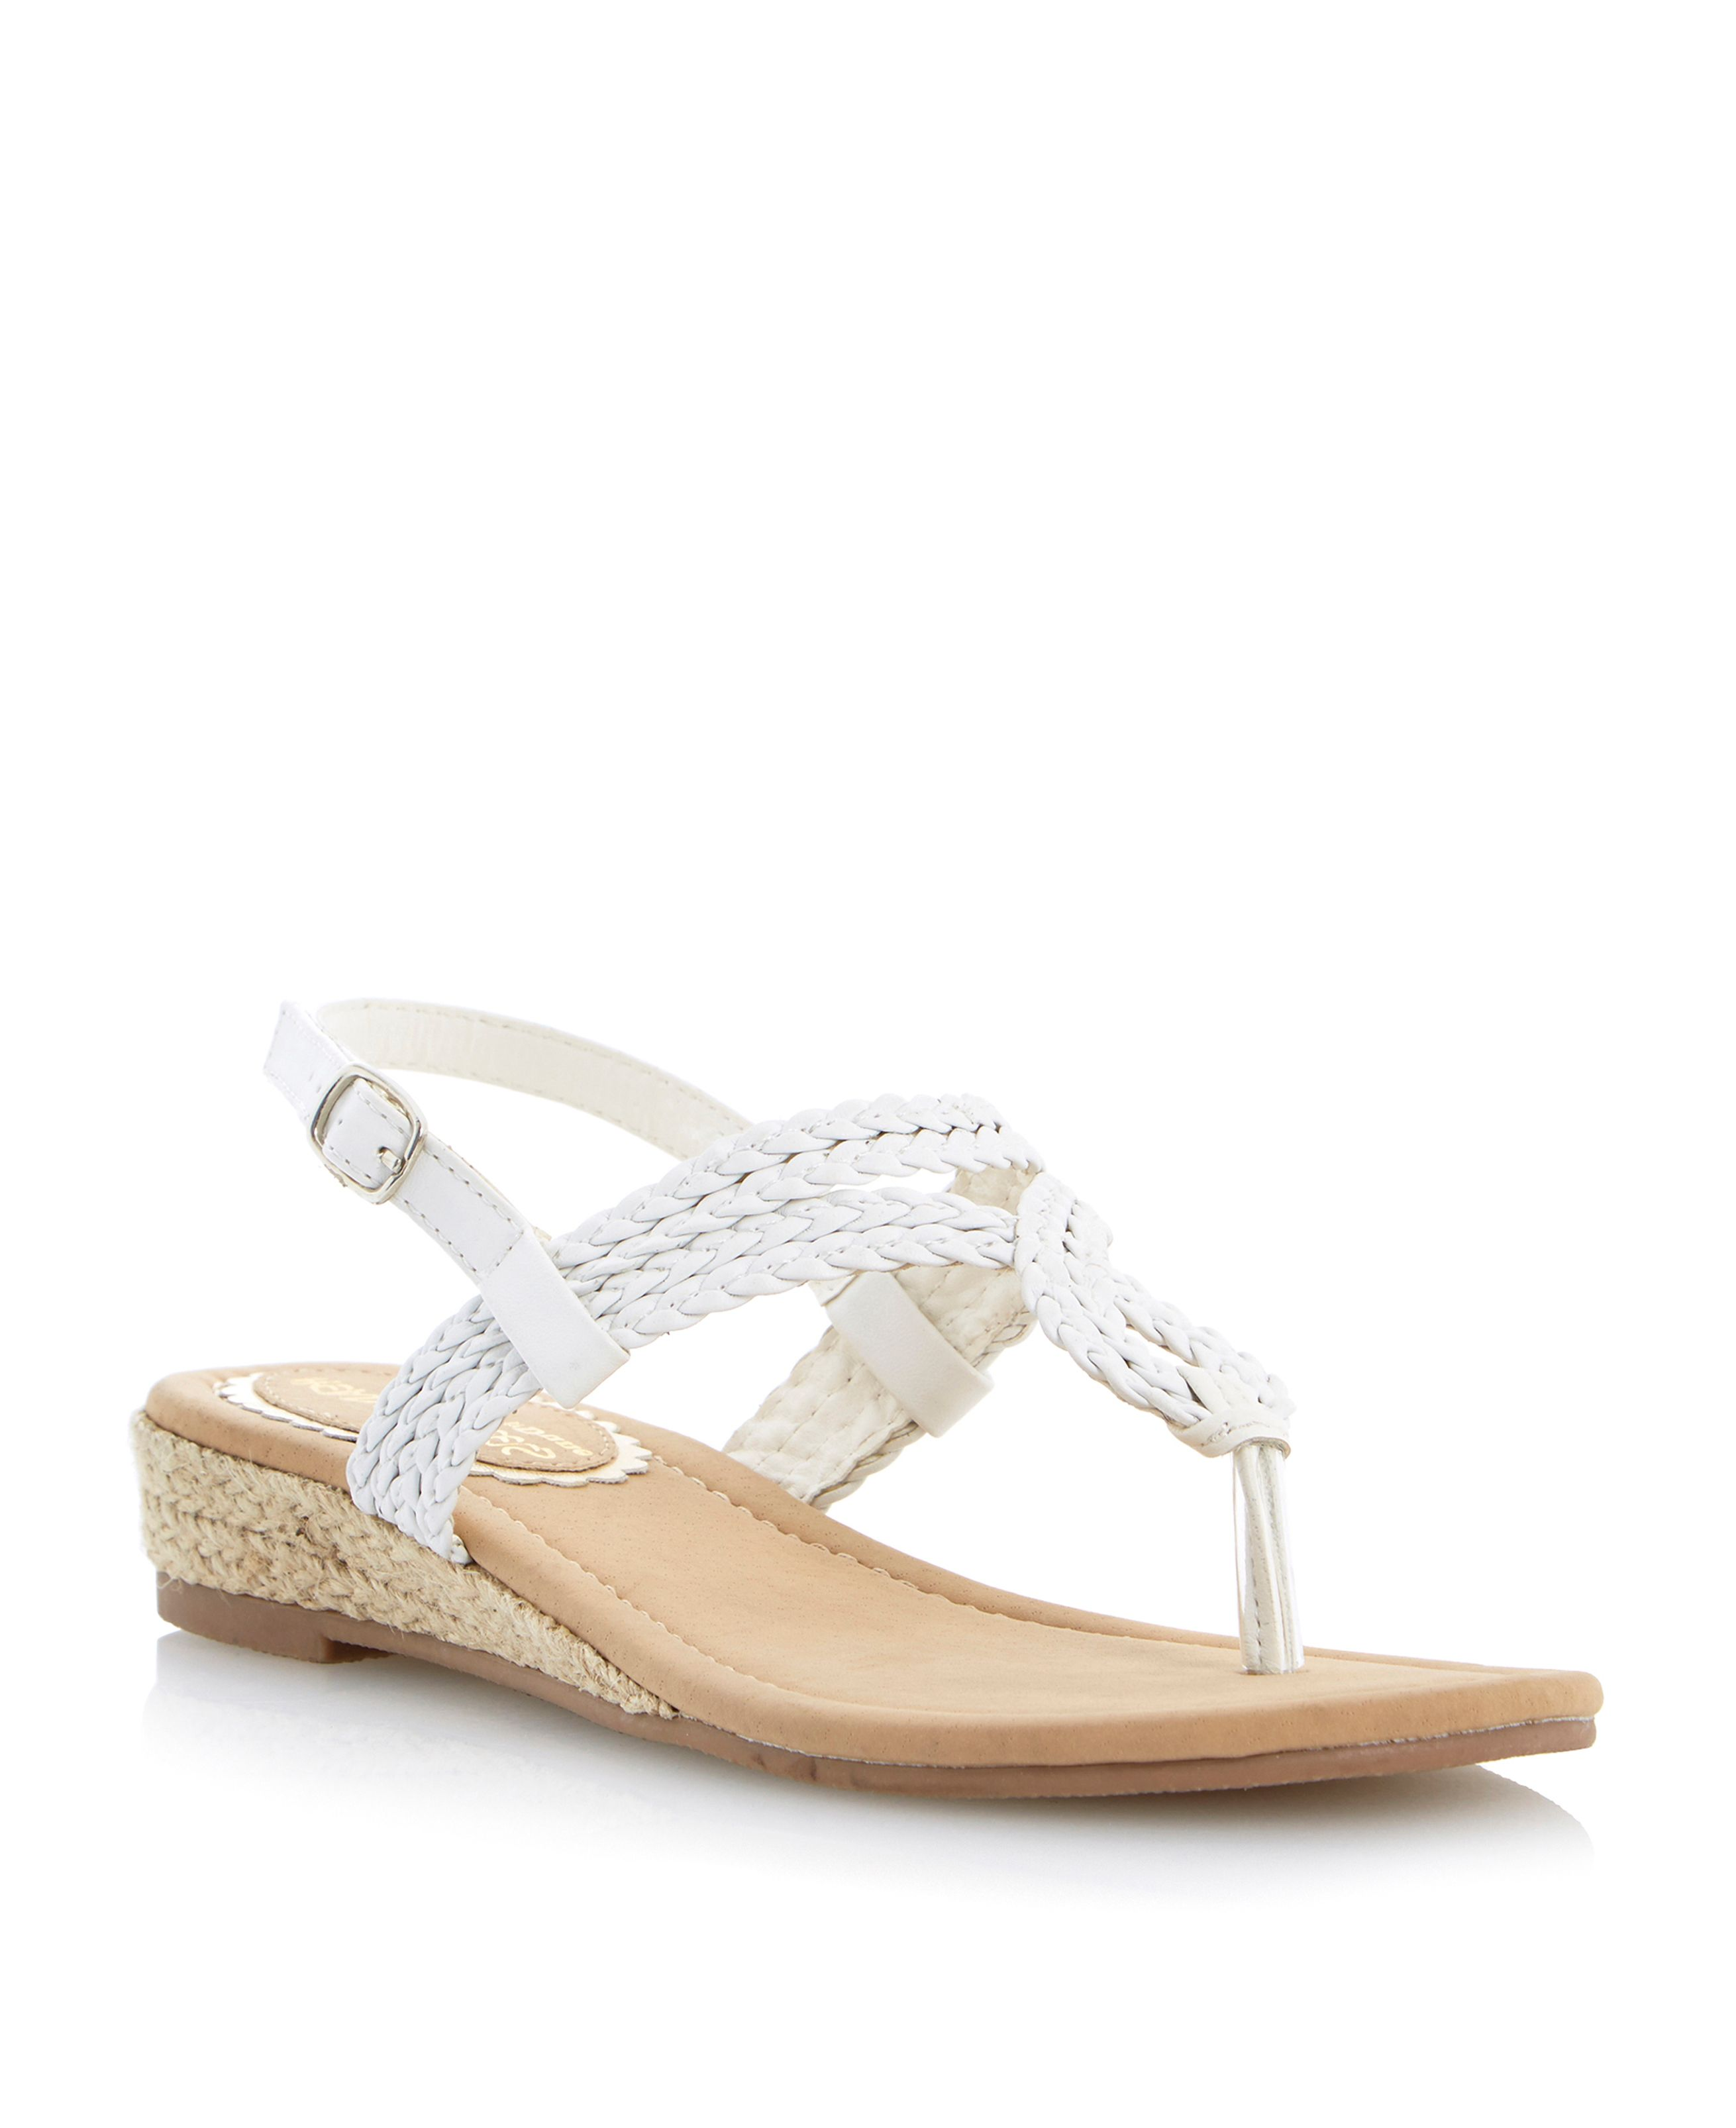 Jonie twisted mini wedge sandals